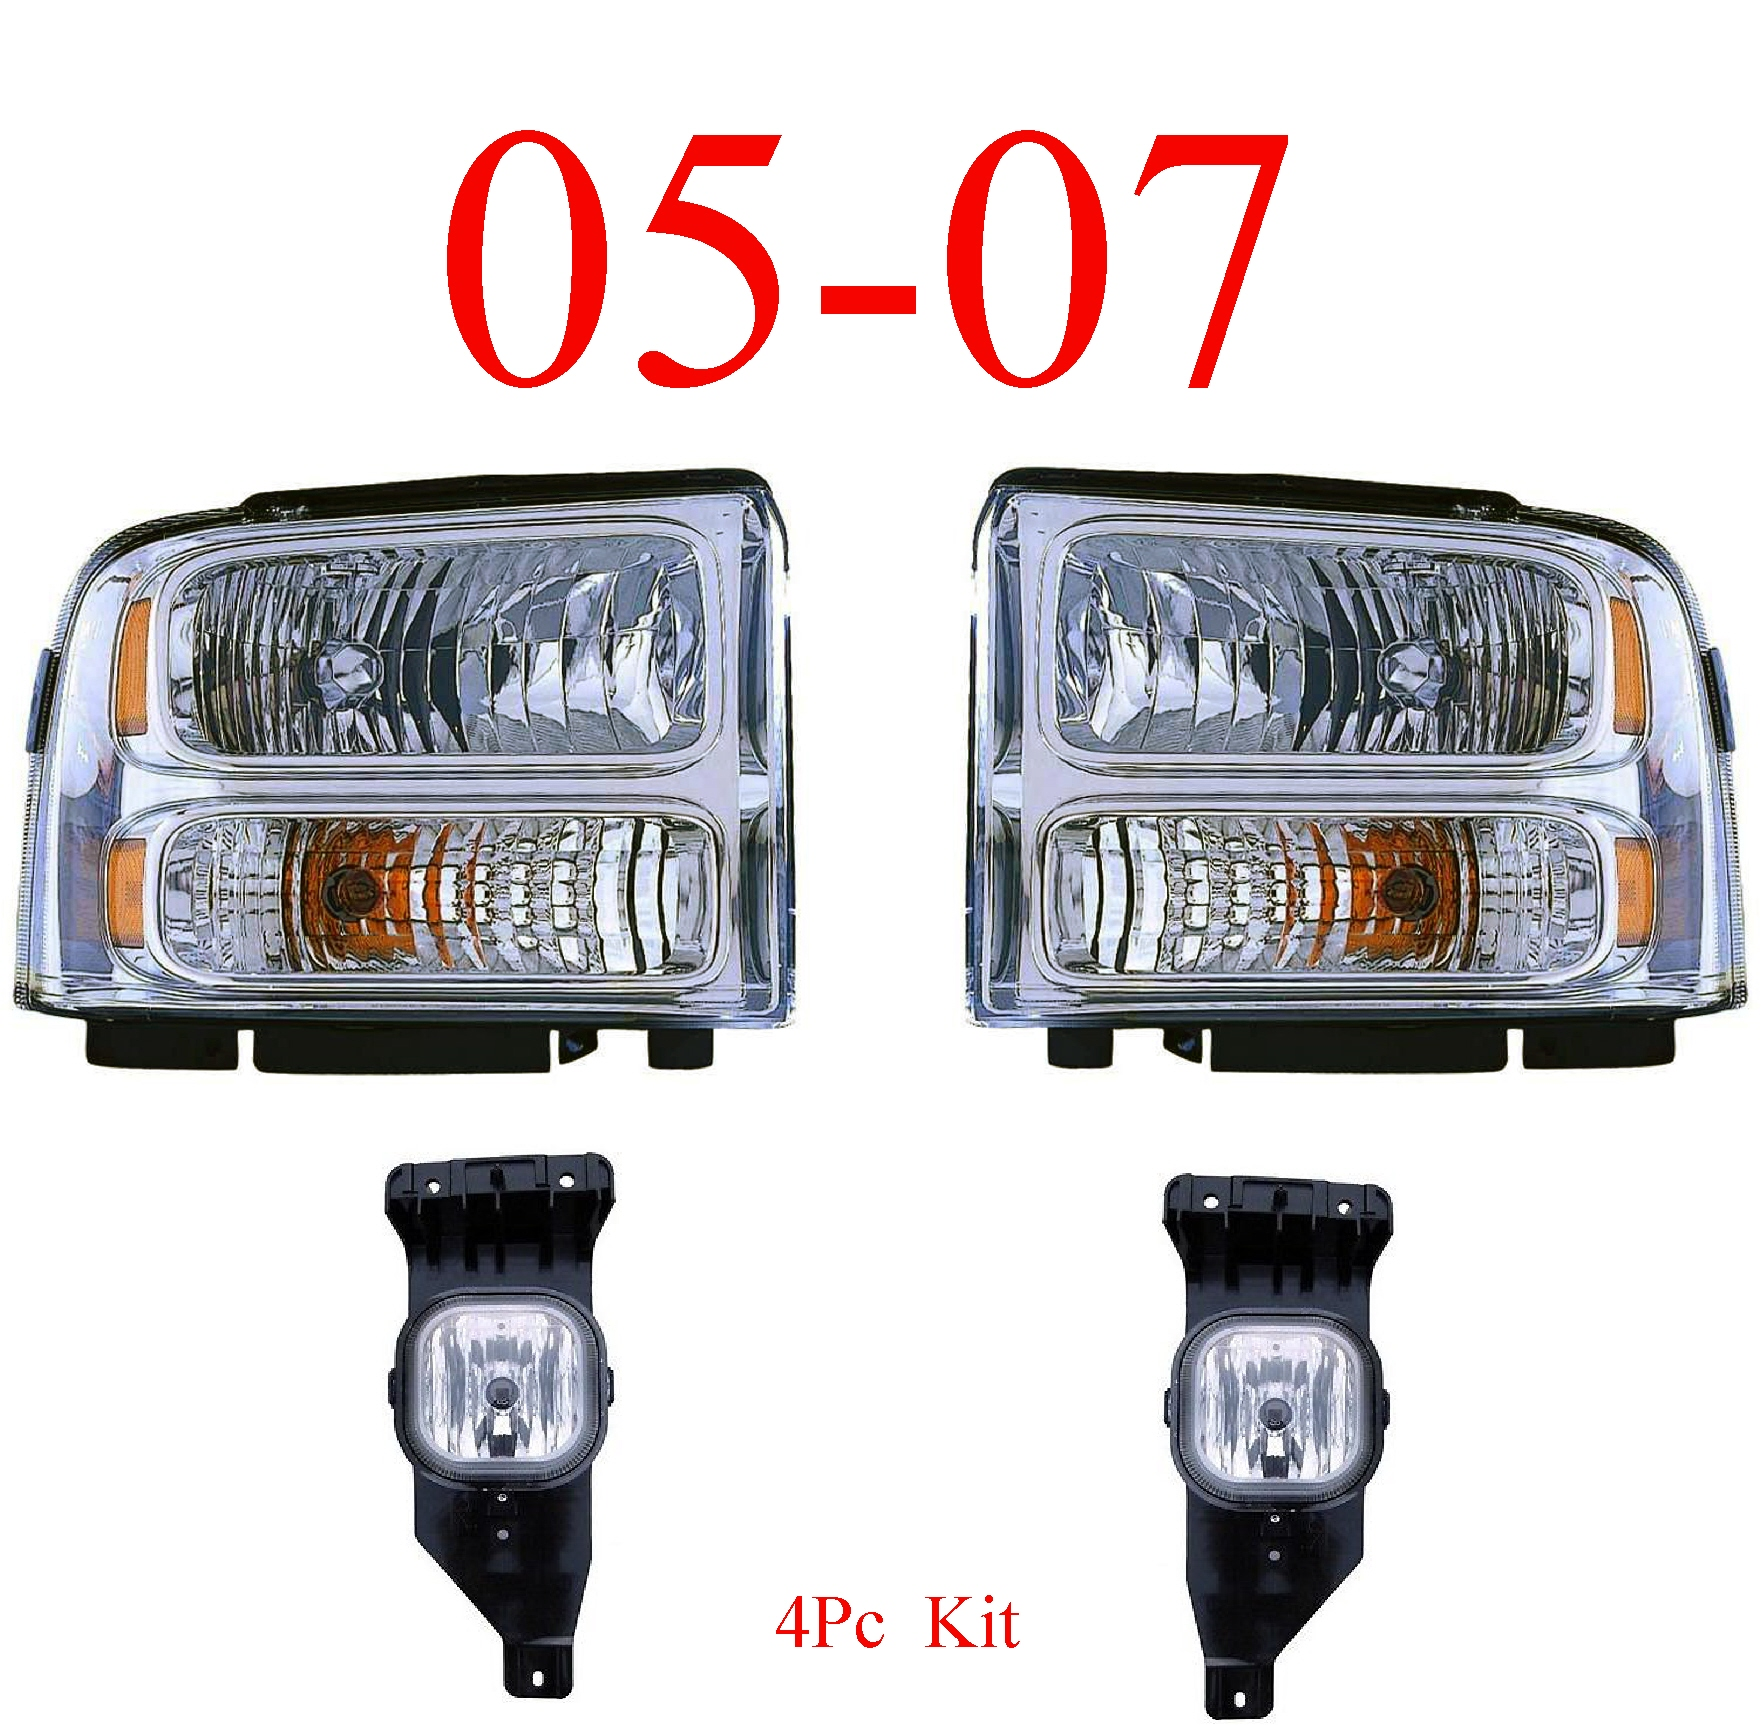 05-07 Ford Super Duty 4Pc Head & Fog Light Kit Chrome